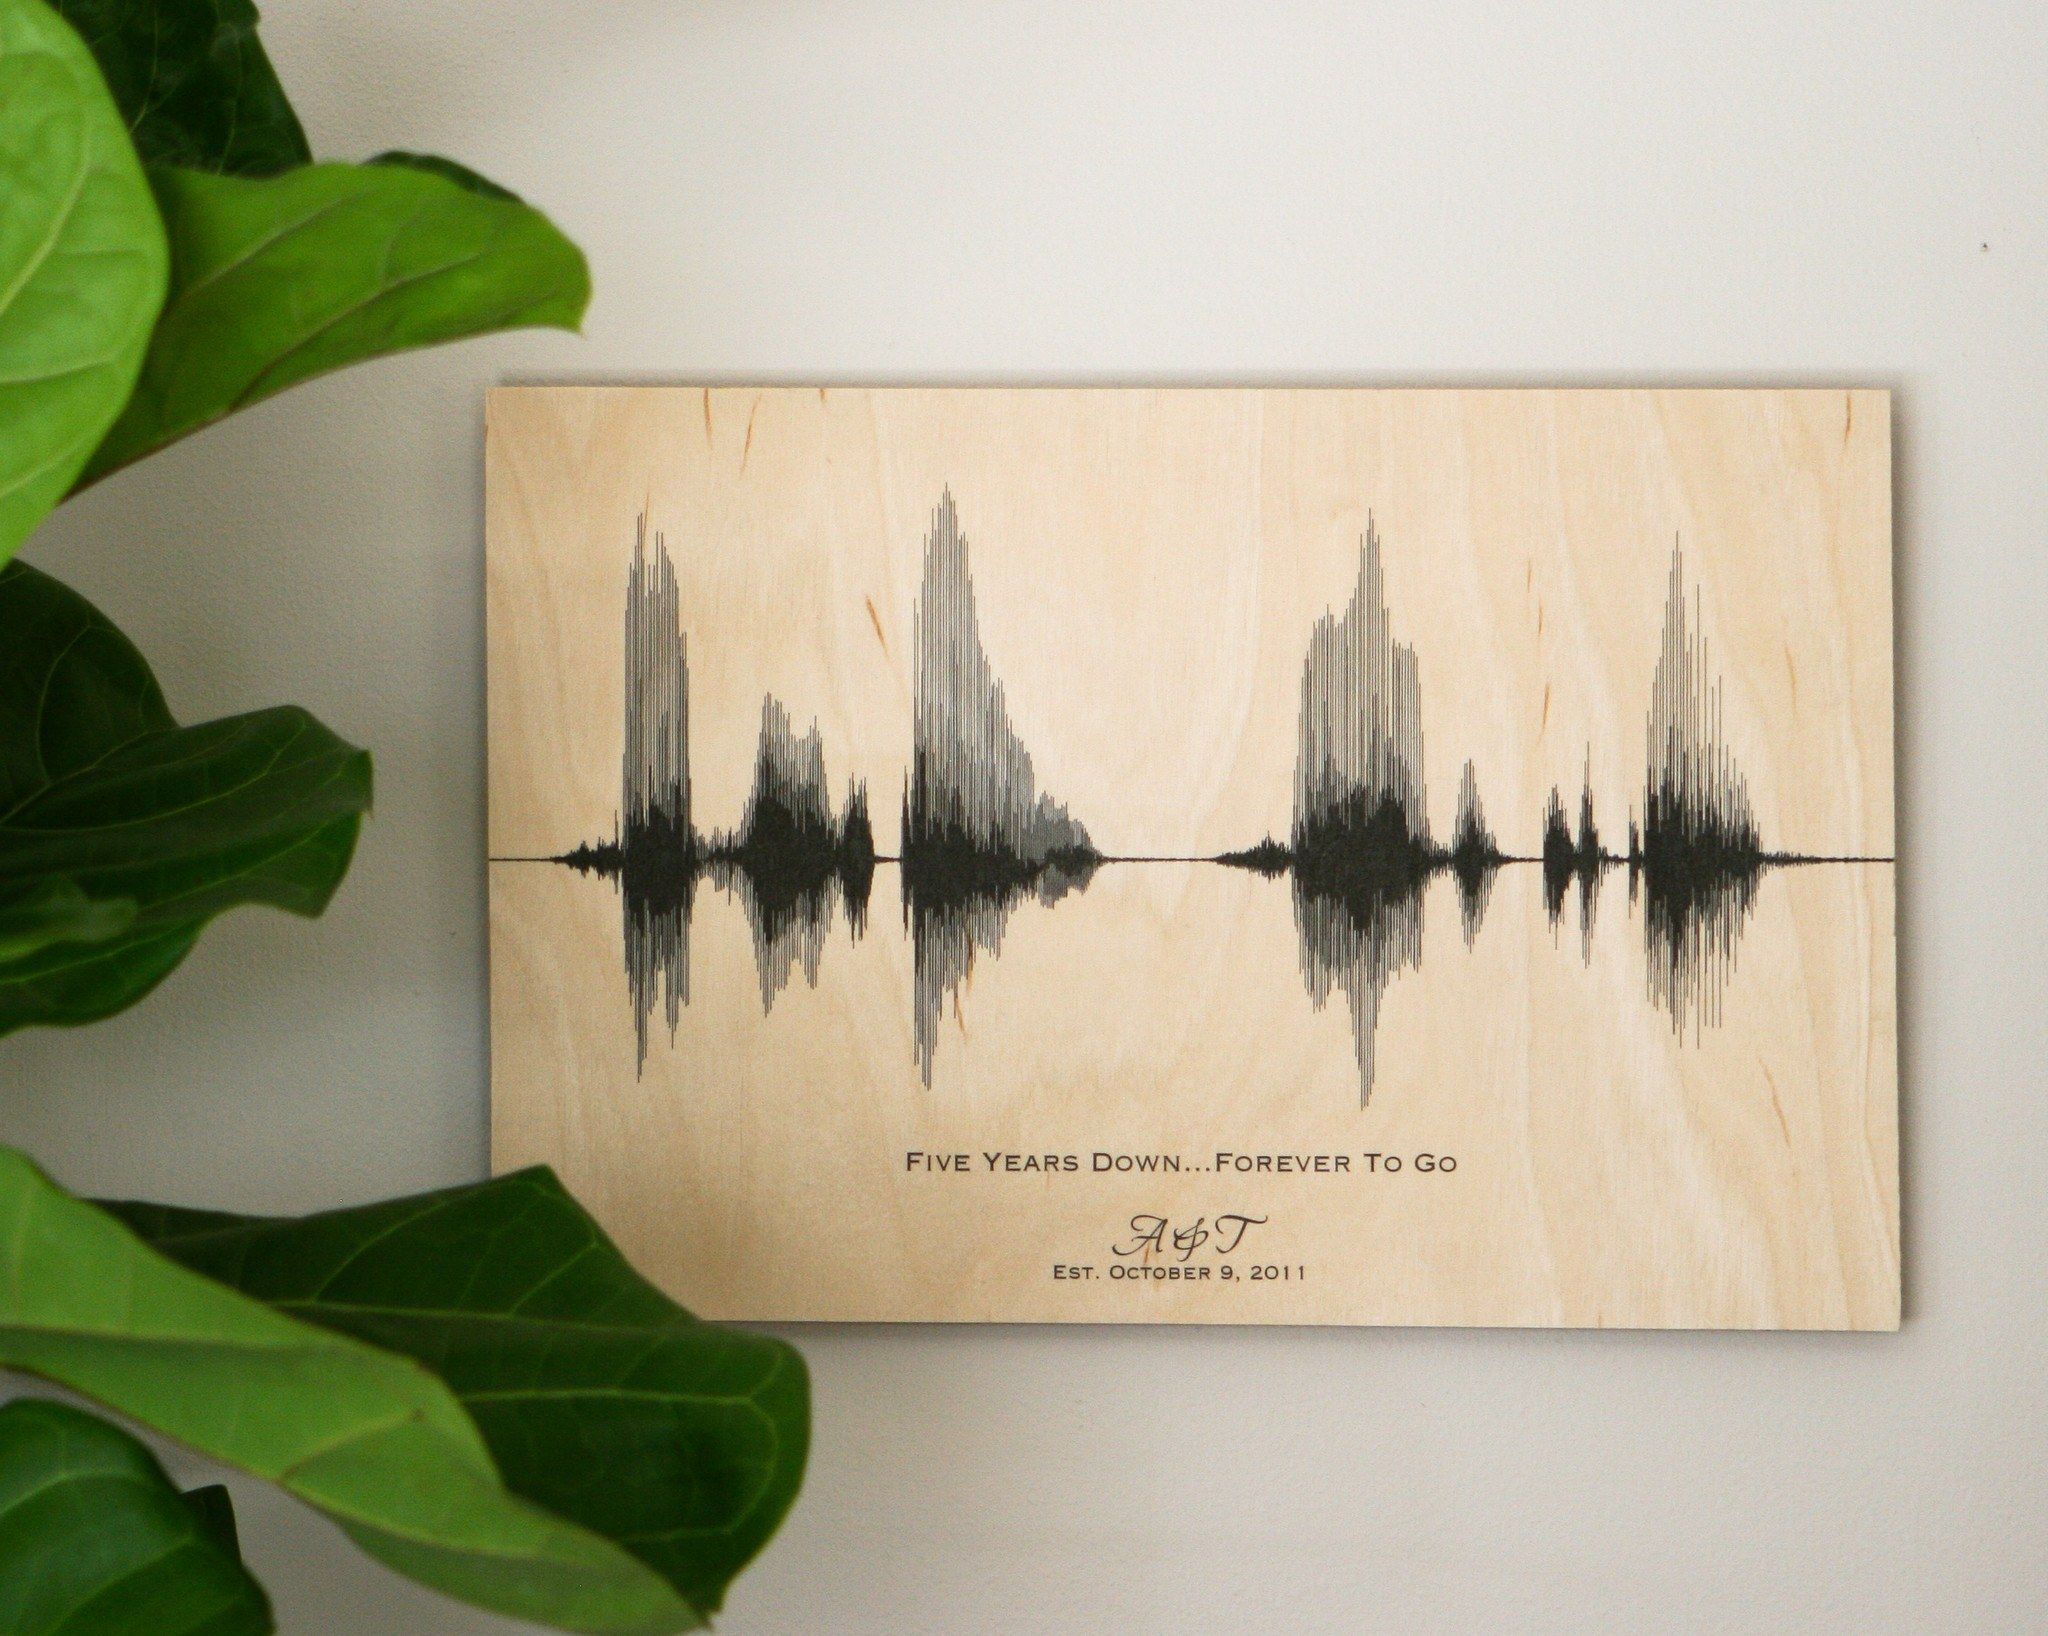 5 year wedding anniversary gifts on wood, personalized sound wave